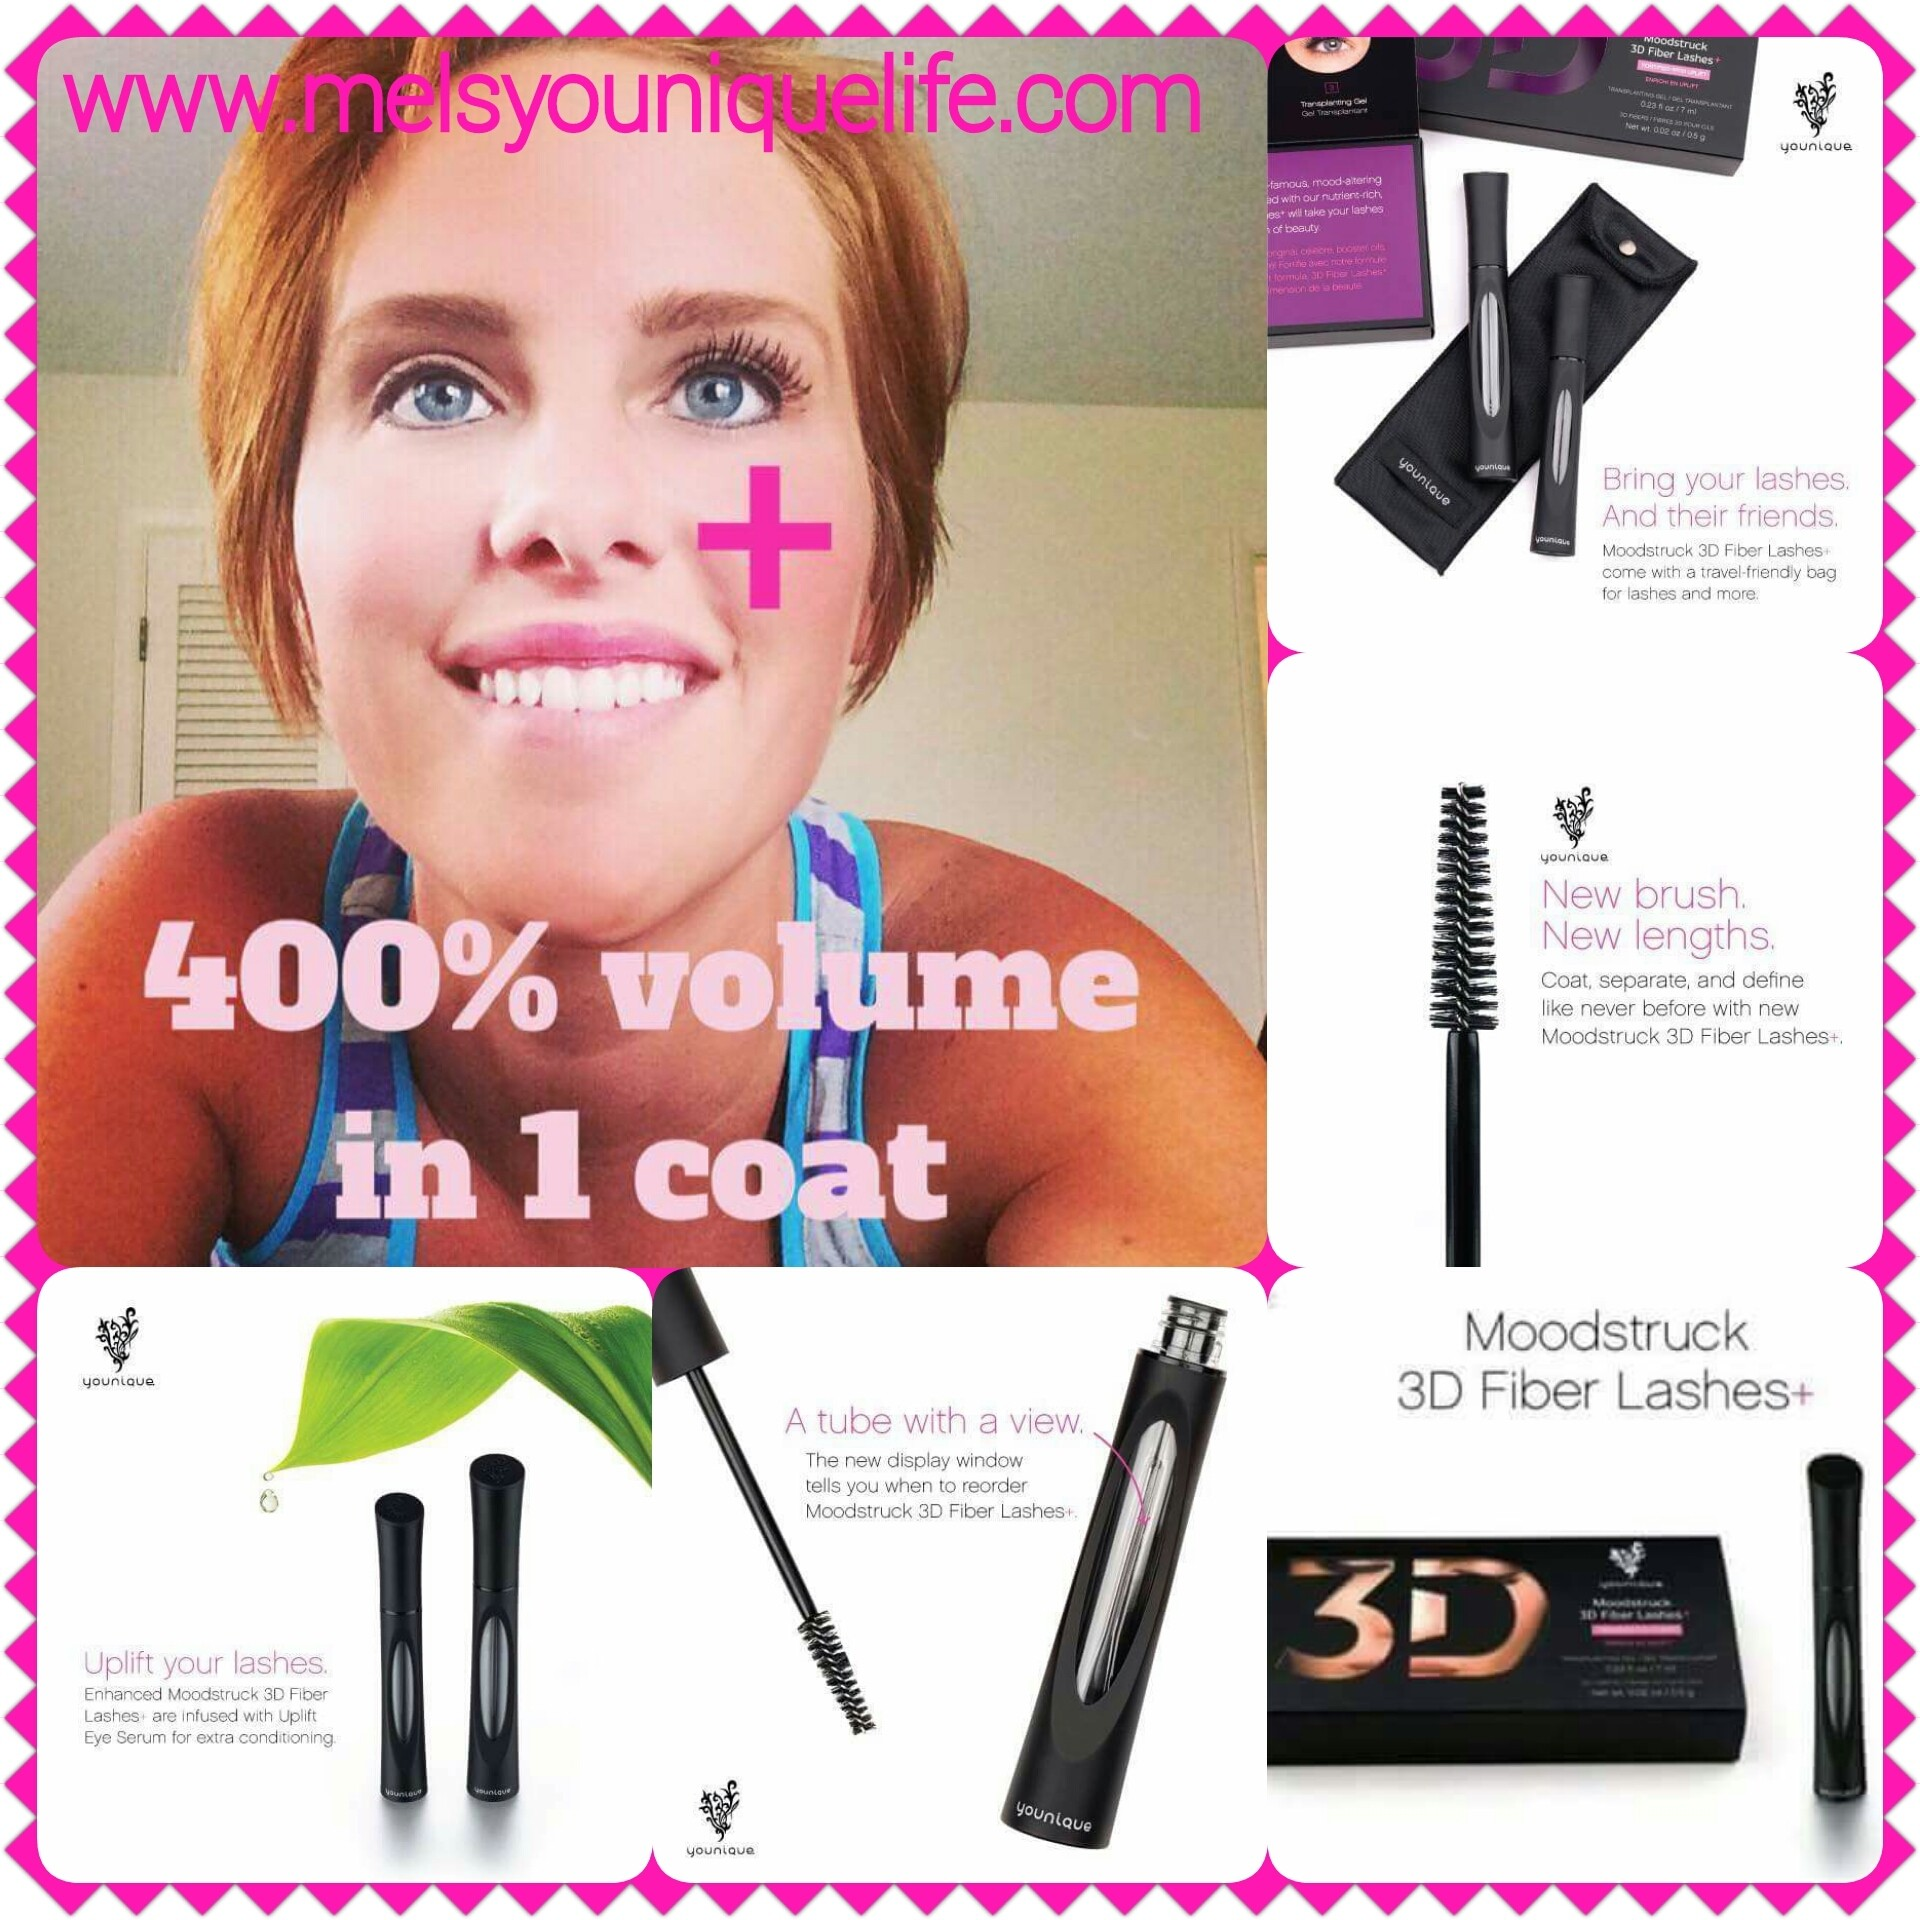 Ok.... seriously! 6 more days n the newly enhanced 3D Fiber Lashes+ will be here... If u want to be the 1st to get them then u need to be on my pre order list. Time is running out fast... PM me to get on the list and dont miss out.